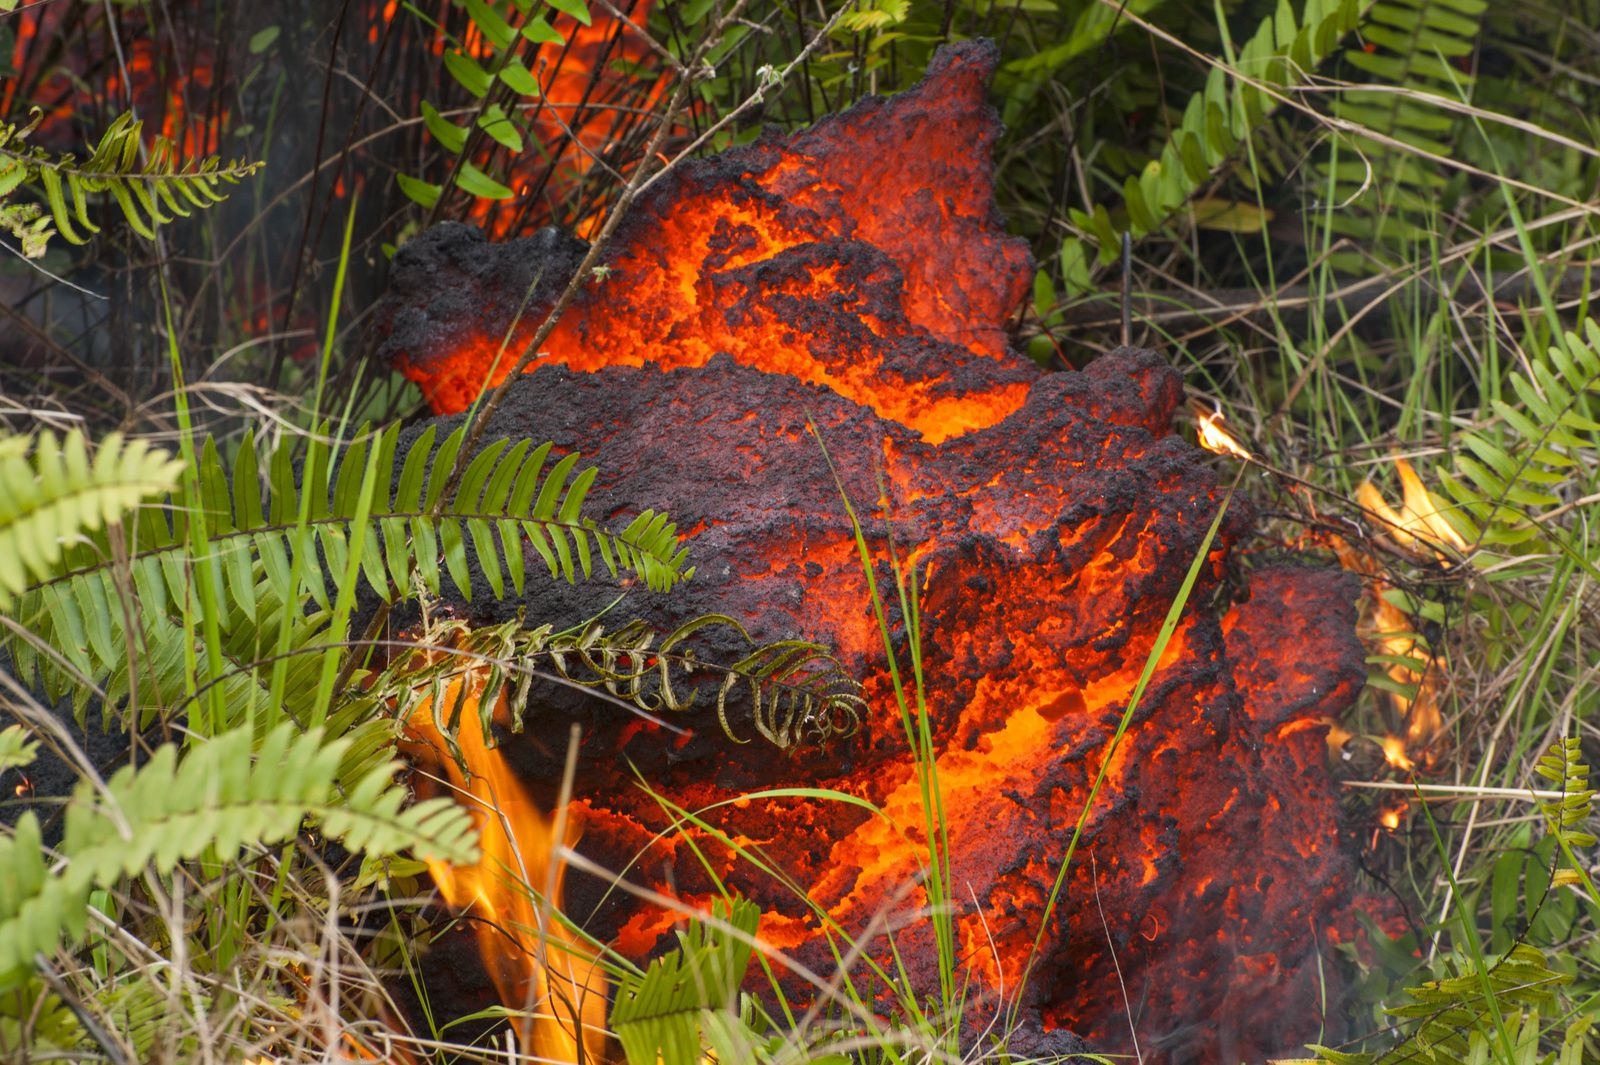 Piton de La Fournaise - lava in contact with pioneer ferns, living their last moments - photo © Thierry Sluys 26.10.2019